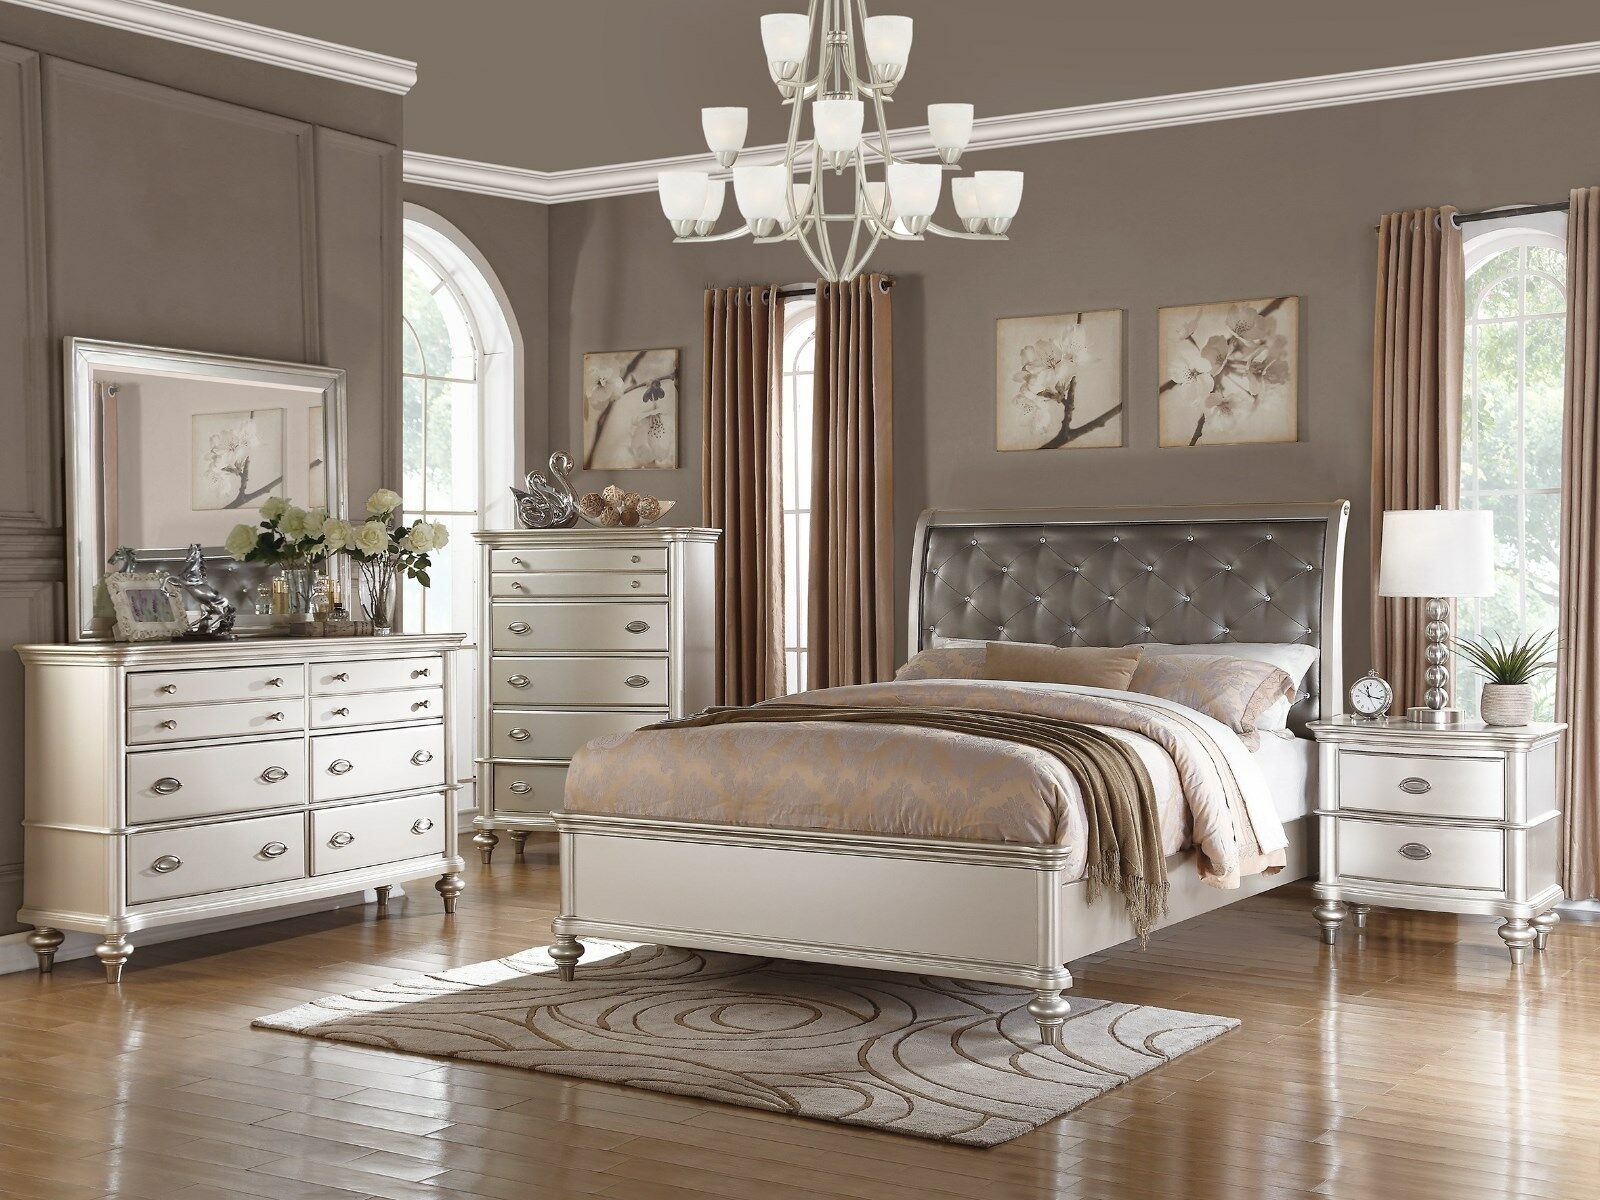 bedroom set king 4pc zurich modern transitional metallic silver wood 10631